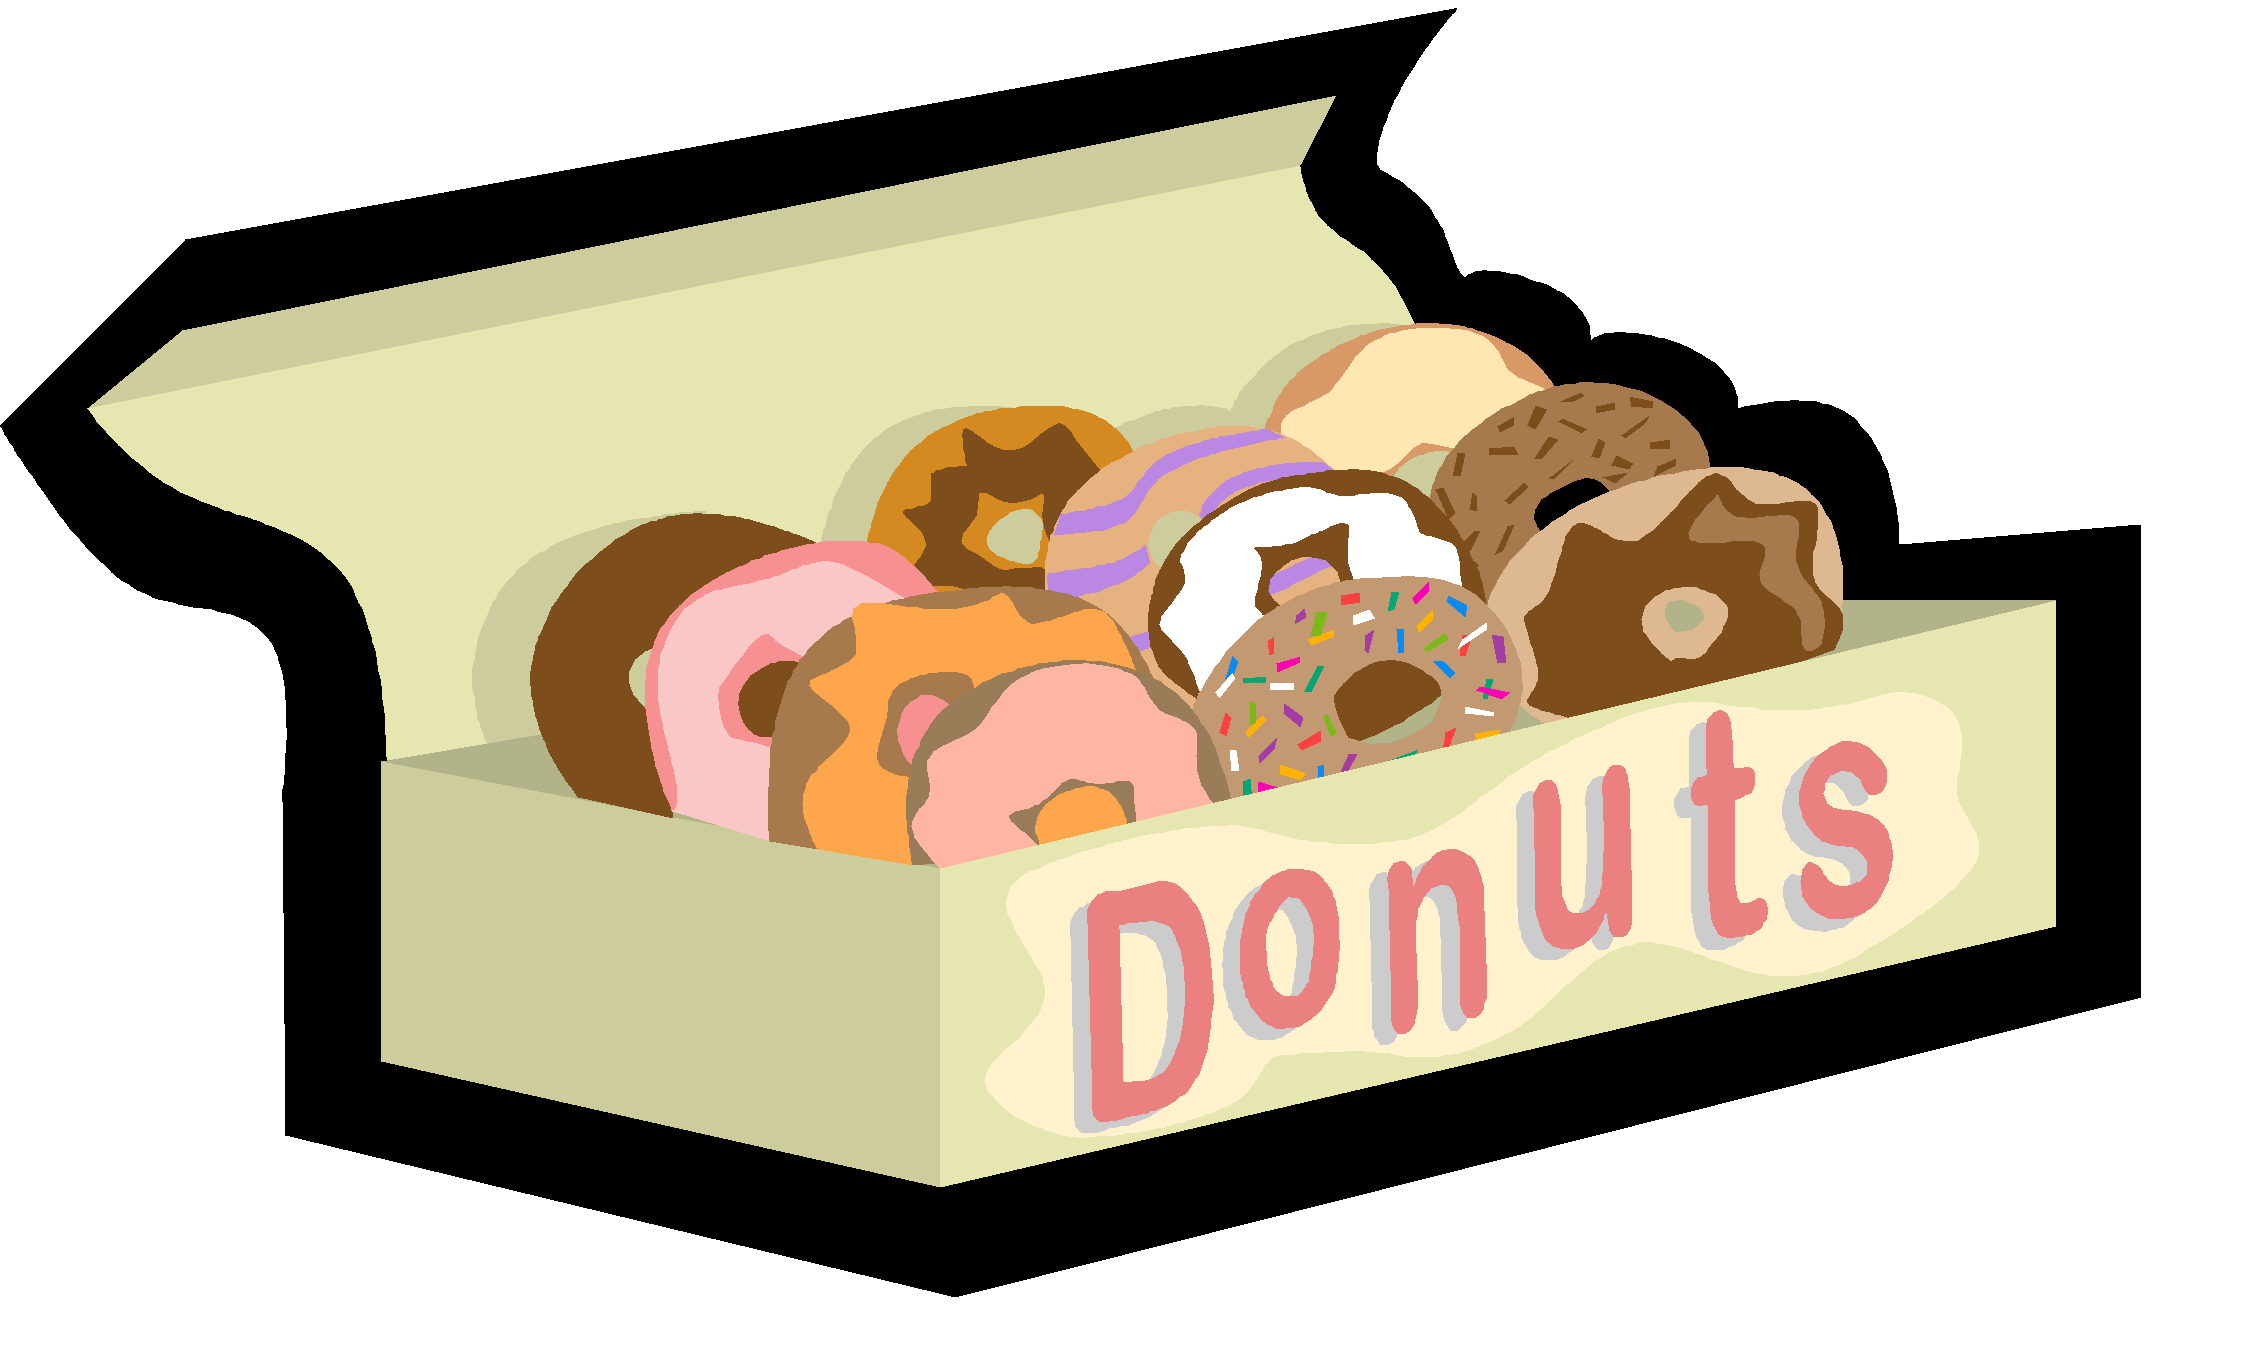 Taming test anxiety mu. Donut clipart in box